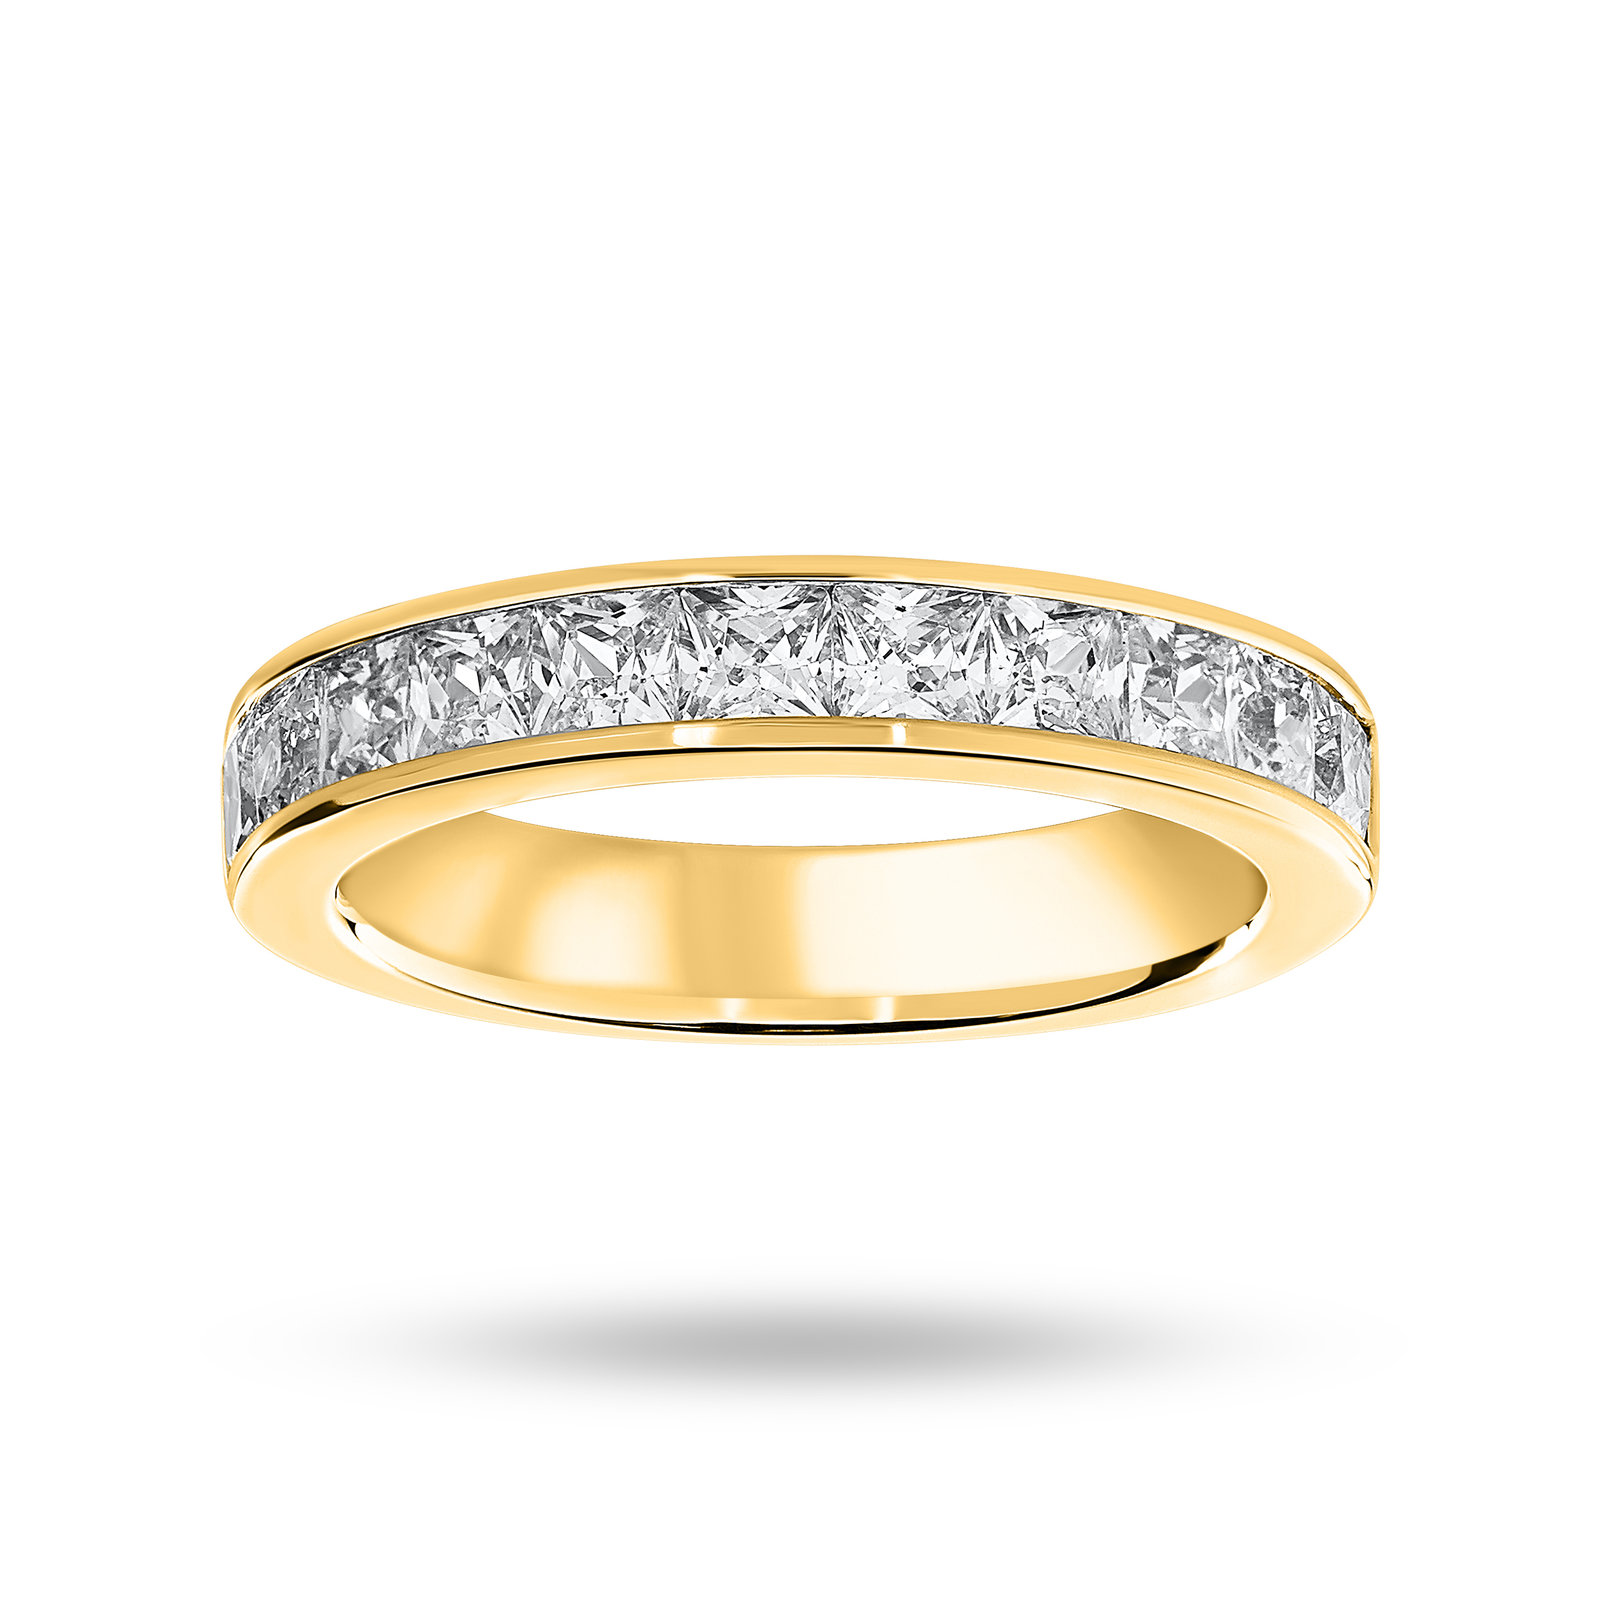 18 Carat Yellow Gold 1.50 Carat Princess Cut Half Eternity Ring